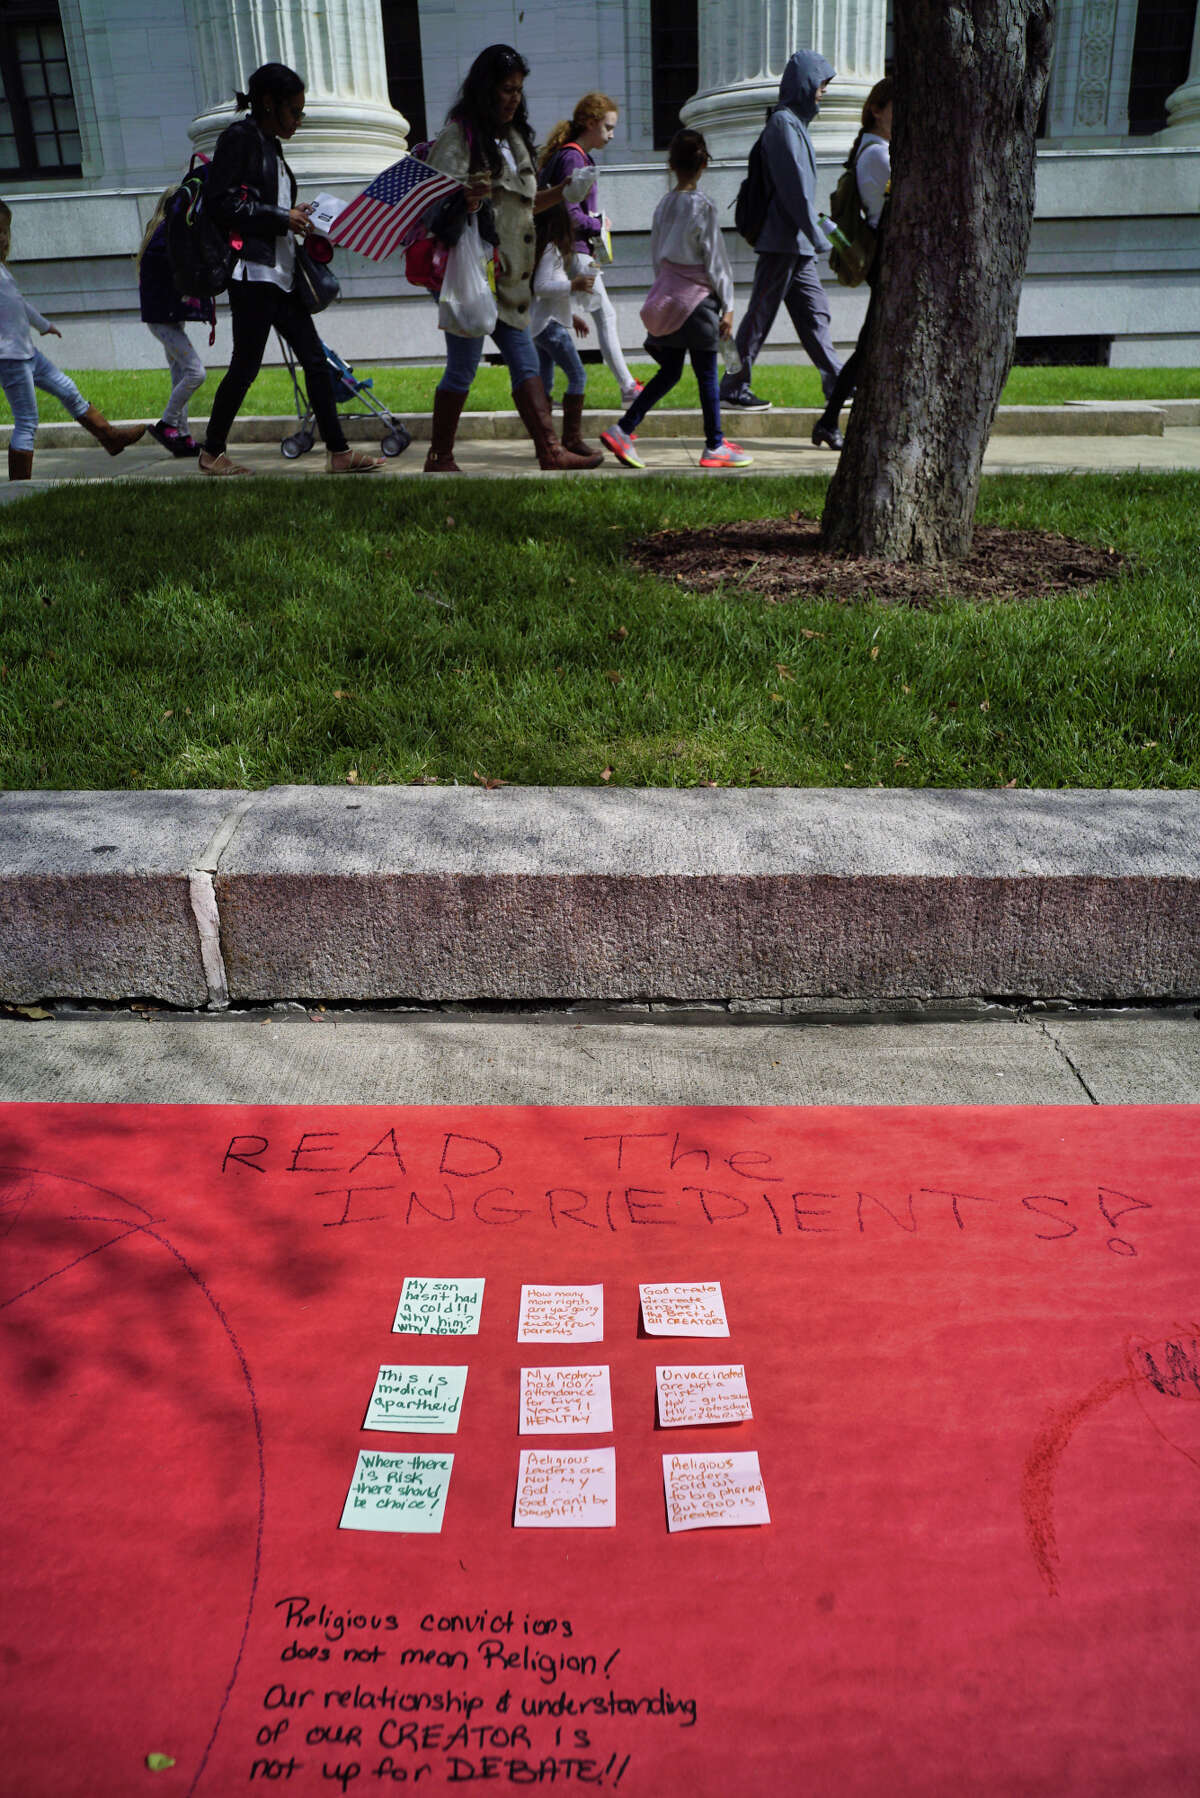 Families opposed to vaccinating their children walk past a scroll laid out on the ground that families wrote on, outside the New York State Education building on Monday, Sept. 9, 2019, in Albany, N.Y. Families came to Albany to pressure the Board of Regents to delay the implementation of a law that ends religious exemptions to New York school vaccination requirements. (Paul Buckowski/Times)